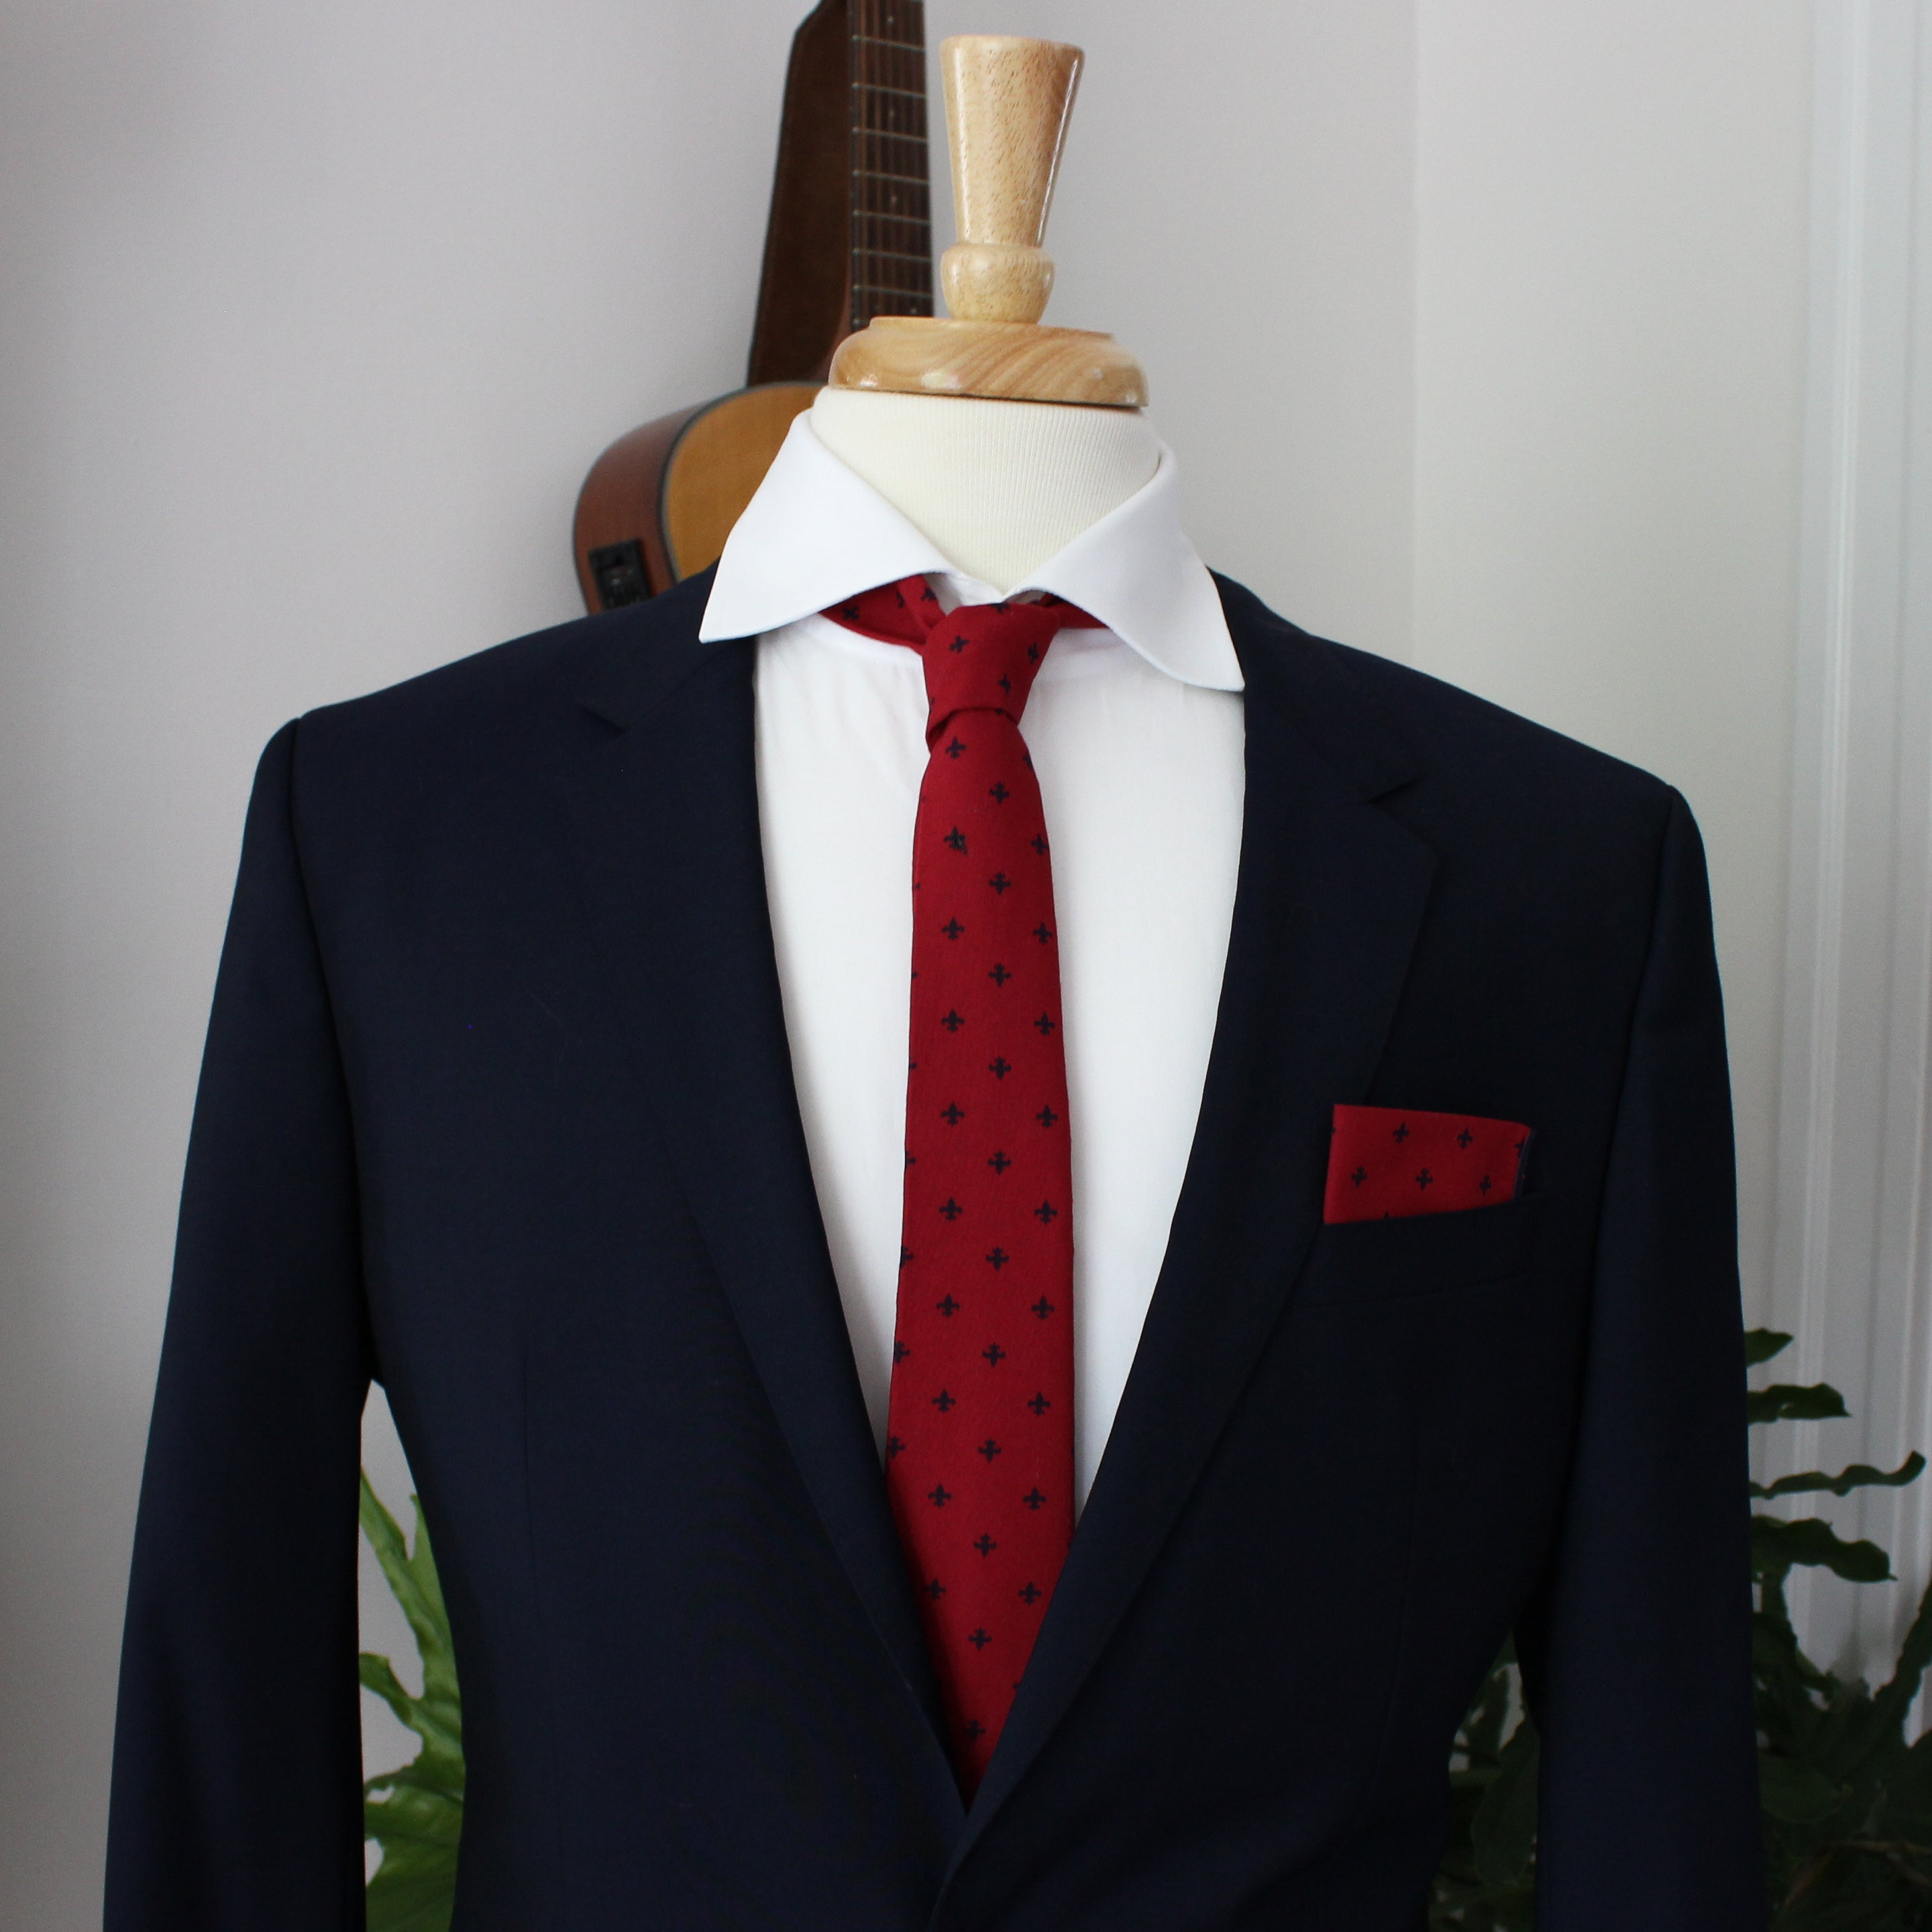 Cardinal Red and Navy Fleur de Lis Pocket Square